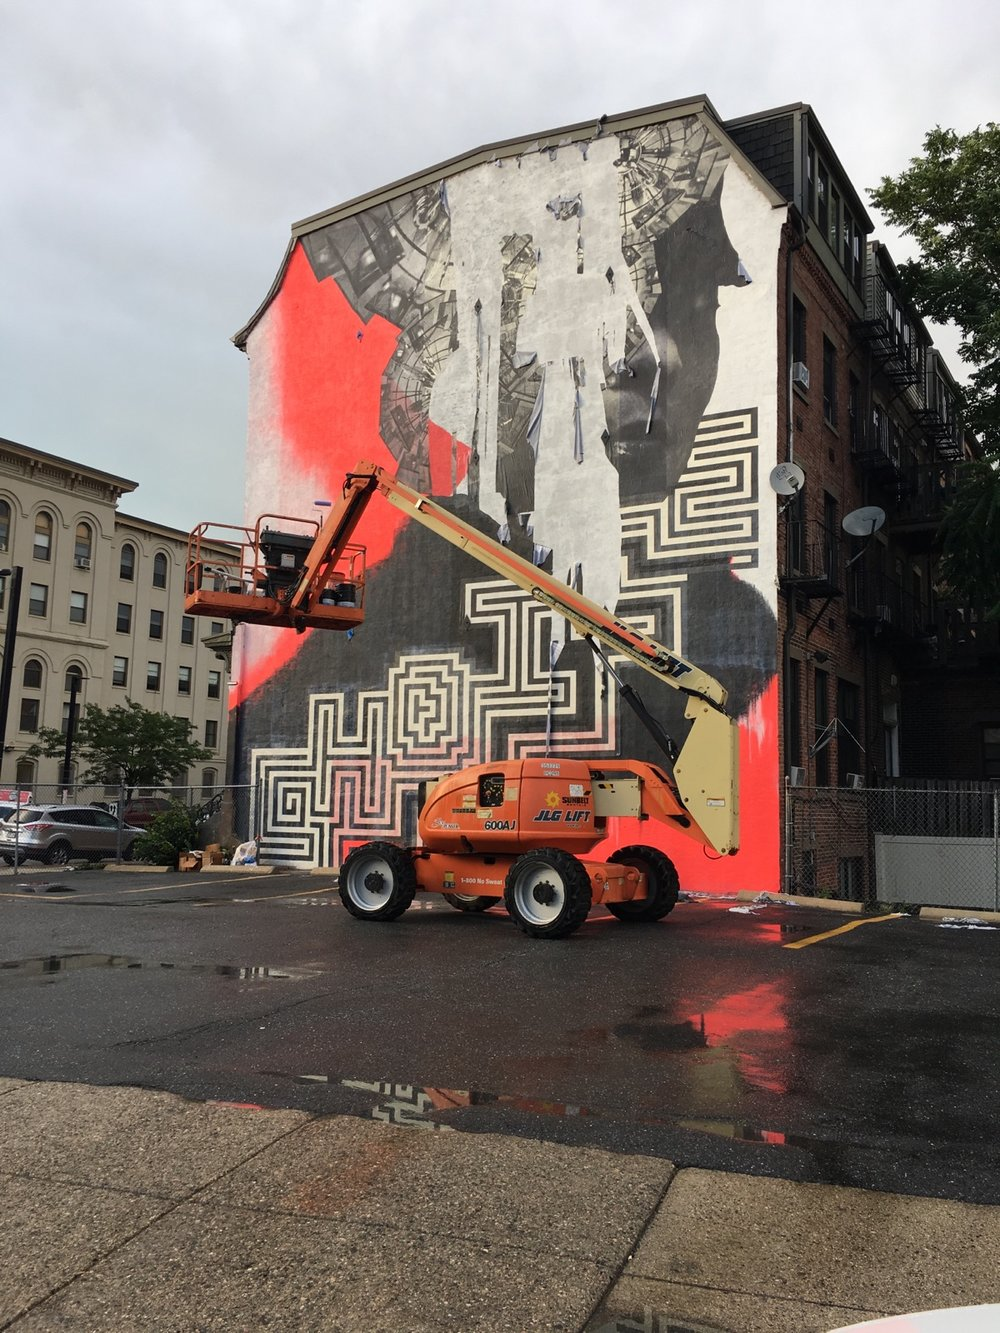 See Her  was near completion when a fierce, fast moving storm barreled through Boston on June 29, peeling off the photo elements of the mural.